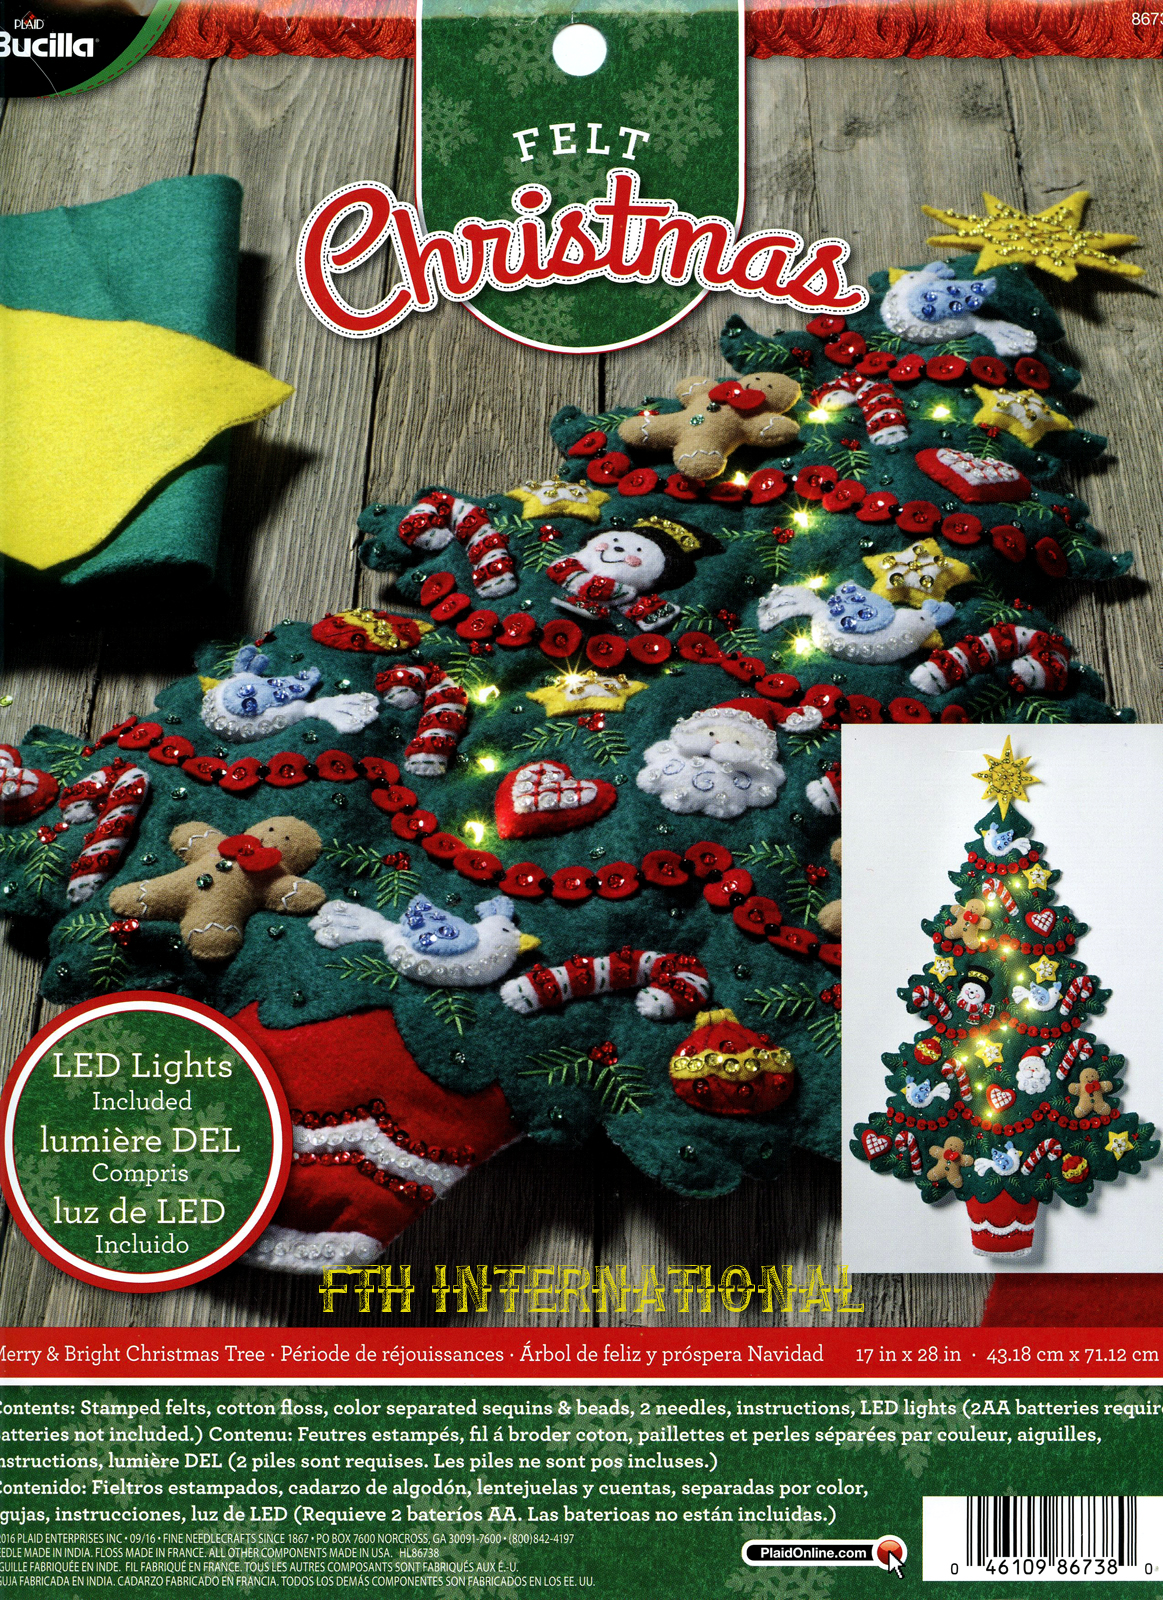 Merry bright christmas tree bucilla felt wall hanging kit 86738 description aloadofball